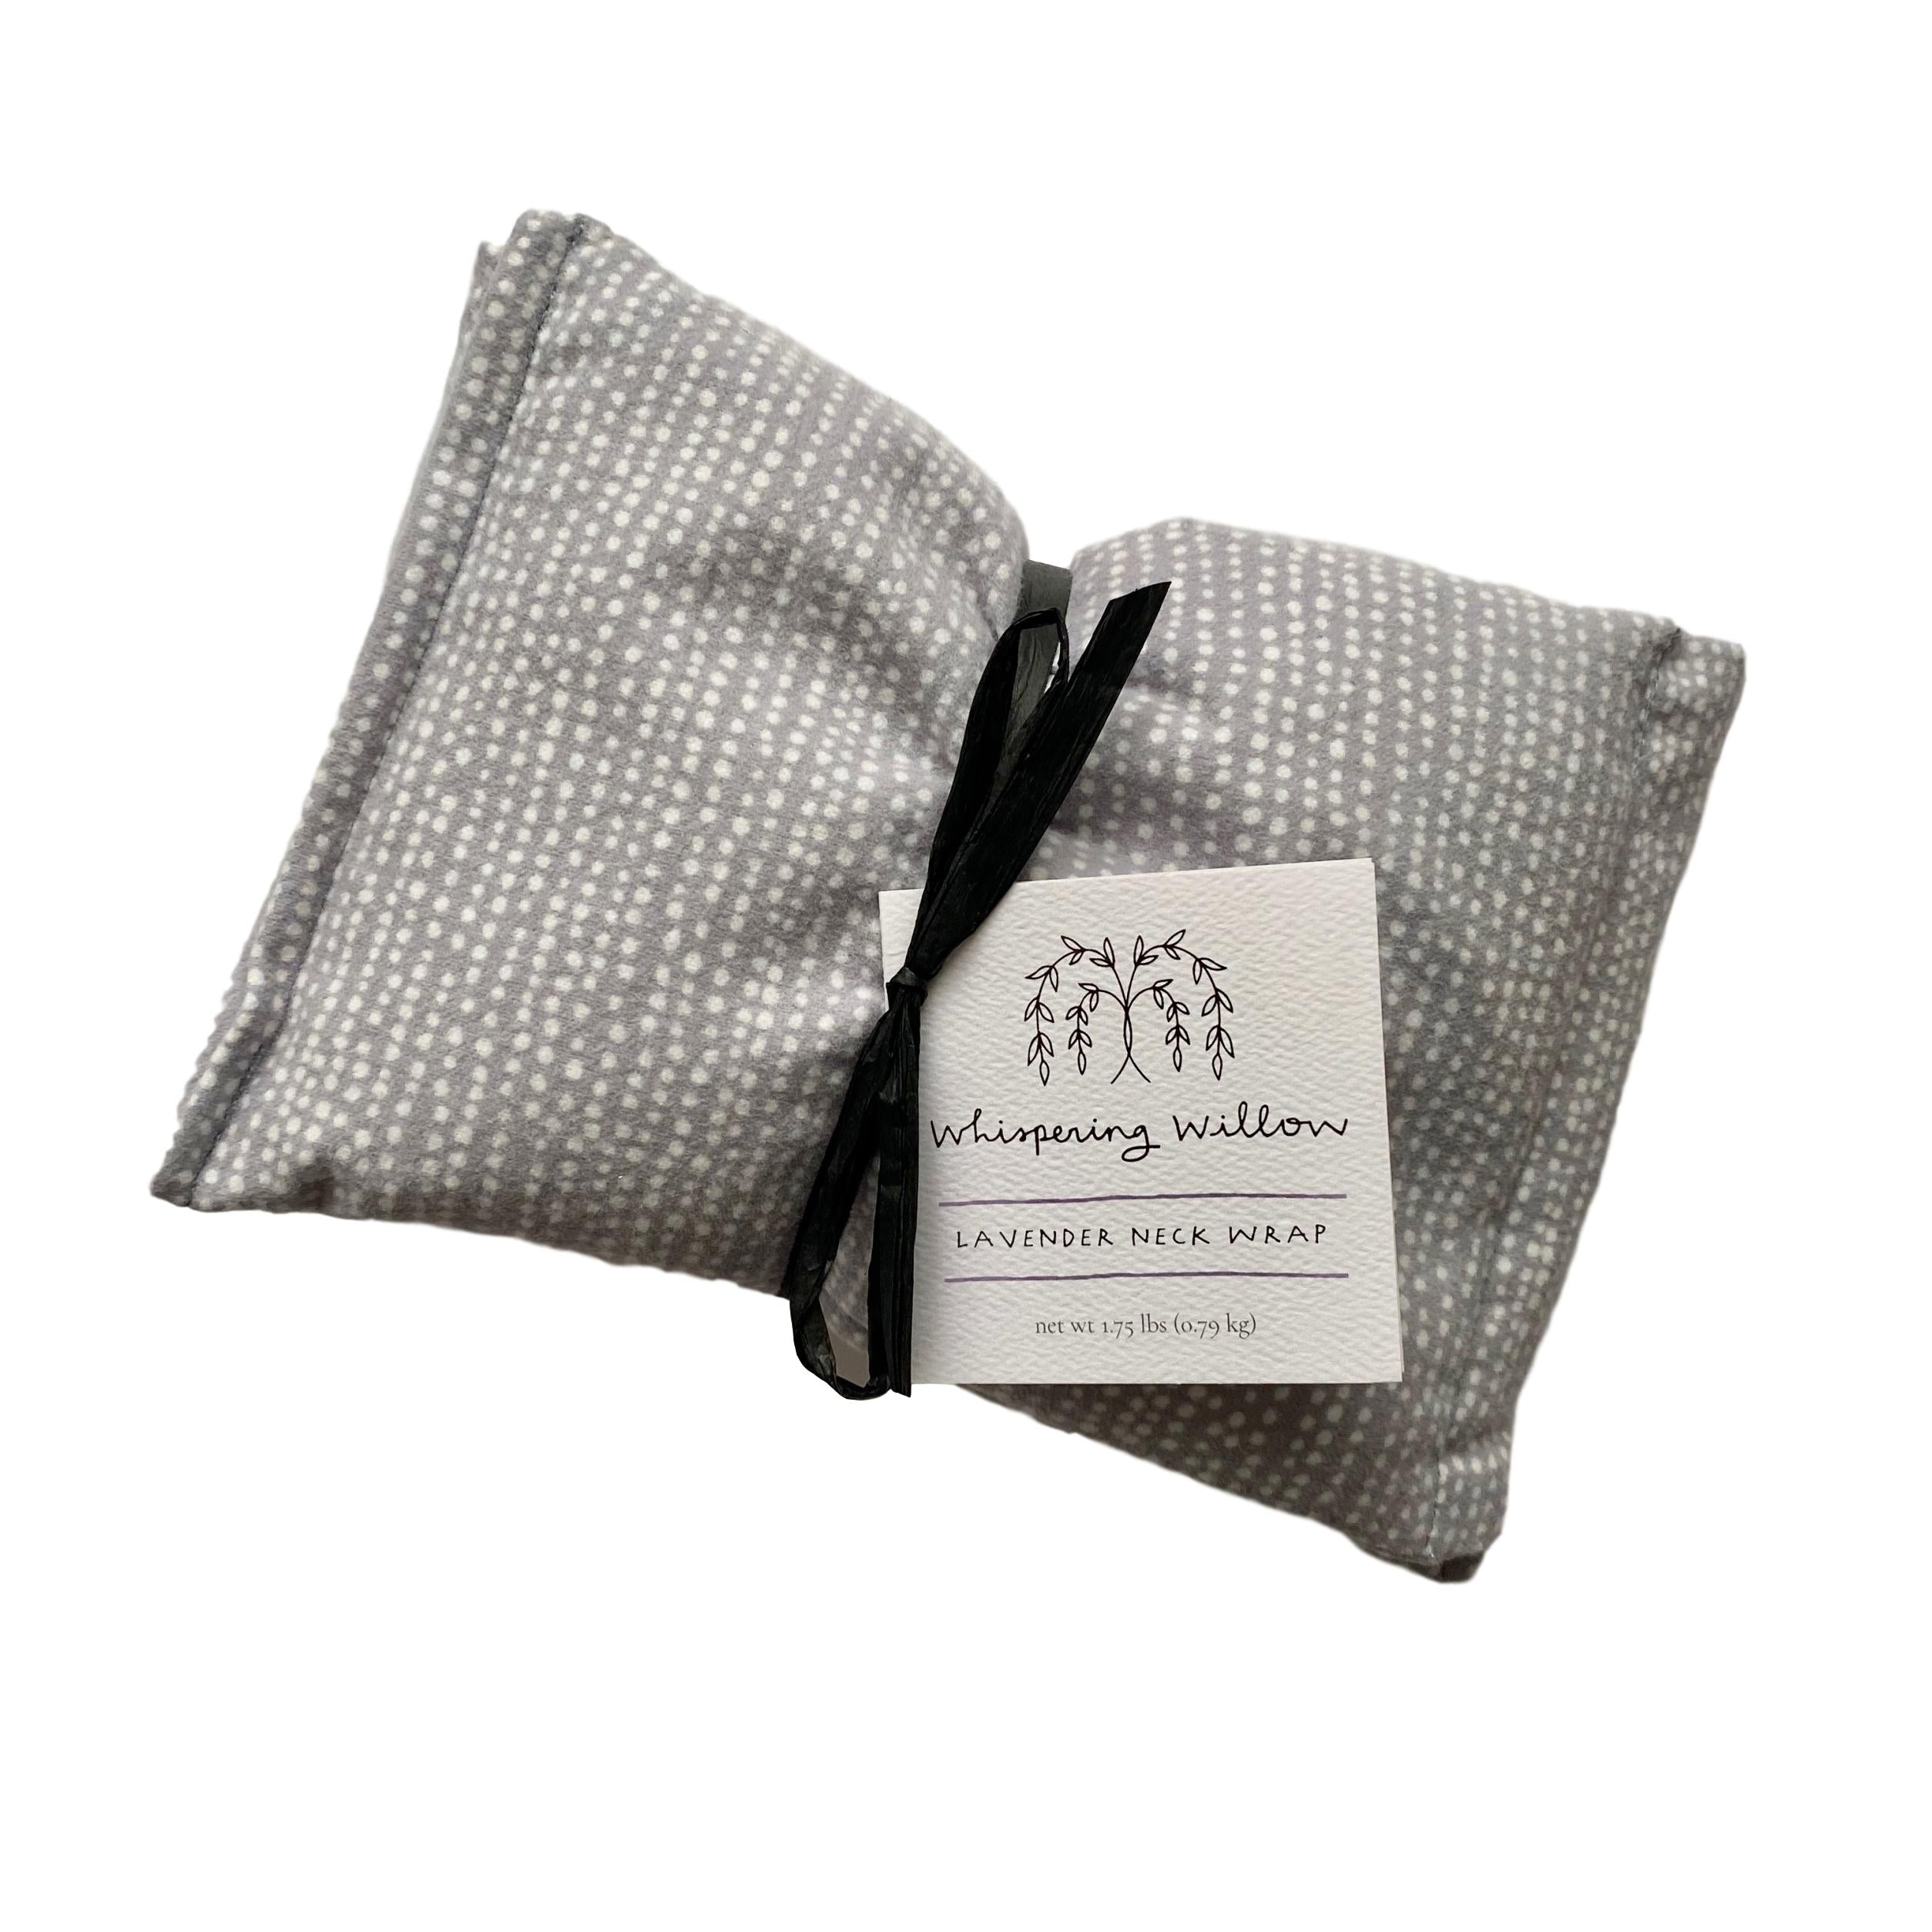 Soothing Lavender Neck Wrap - Giften Market